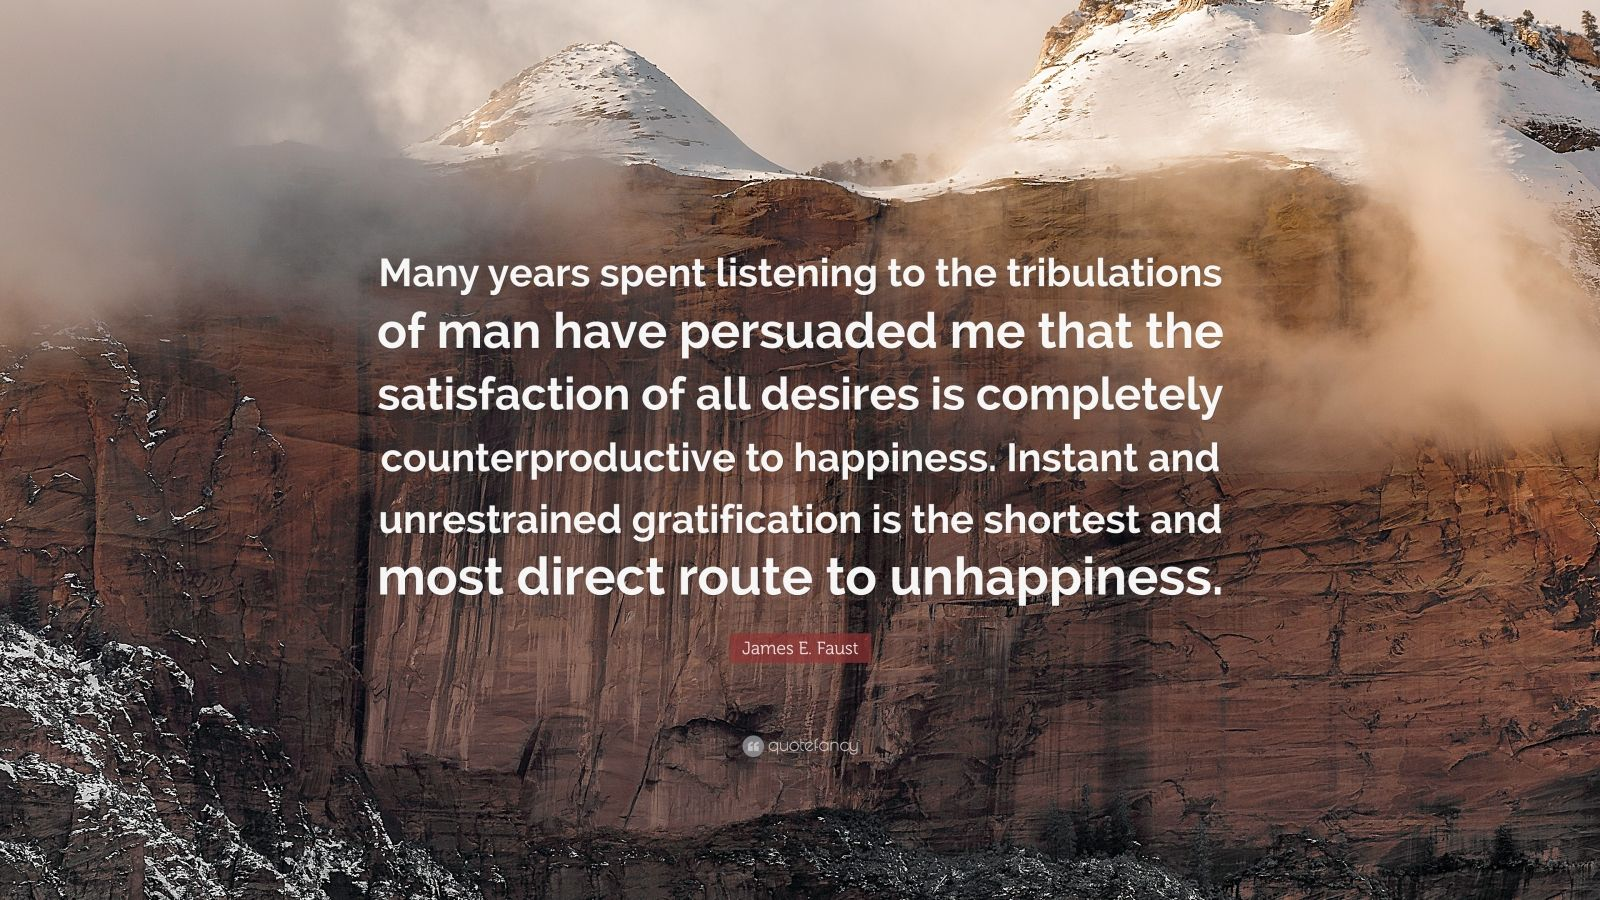 "James E. Faust Quote: ""Many years spent listening to the tribulations of man have persuaded me that the satisfaction of all desires is completely counterproductive to happiness. Instant and unrestrained gratification is the shortest and most direct route to unhappiness."""